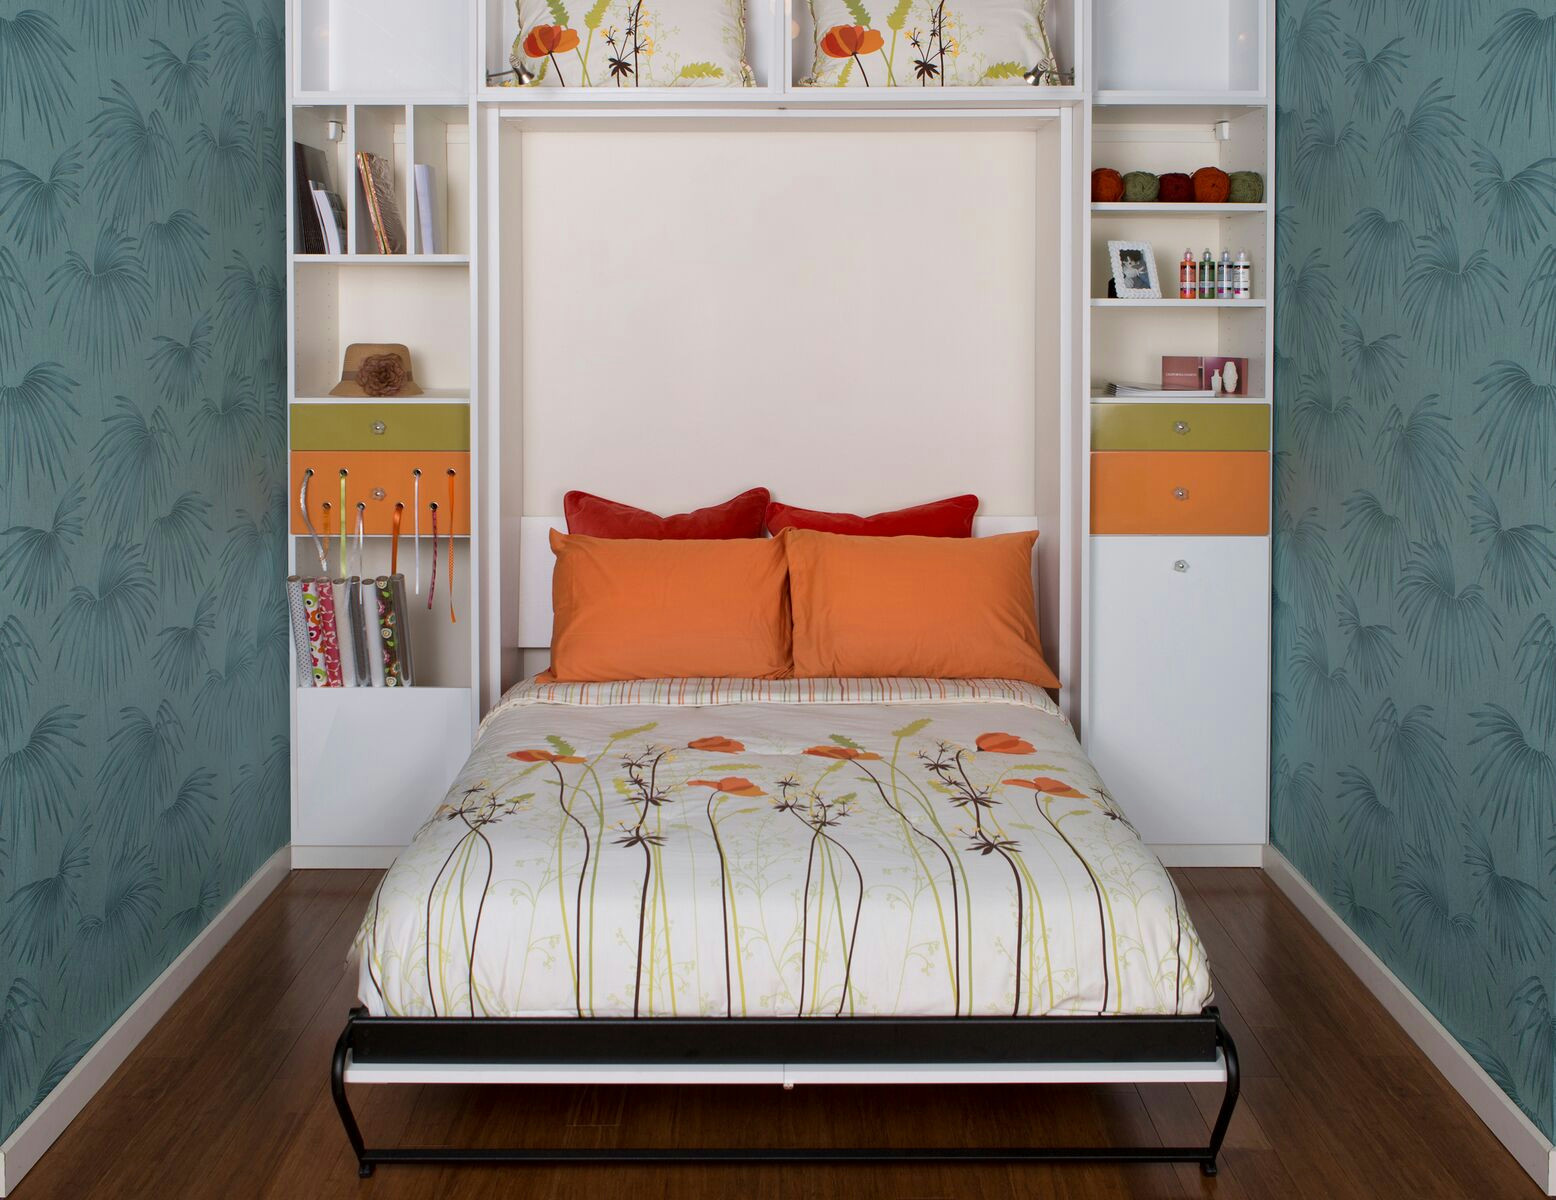 CALIFORNIA CLOSETS CHARLESTON – HOST YOUR GUESTS WITH UNIQUE MURPHY BEDS